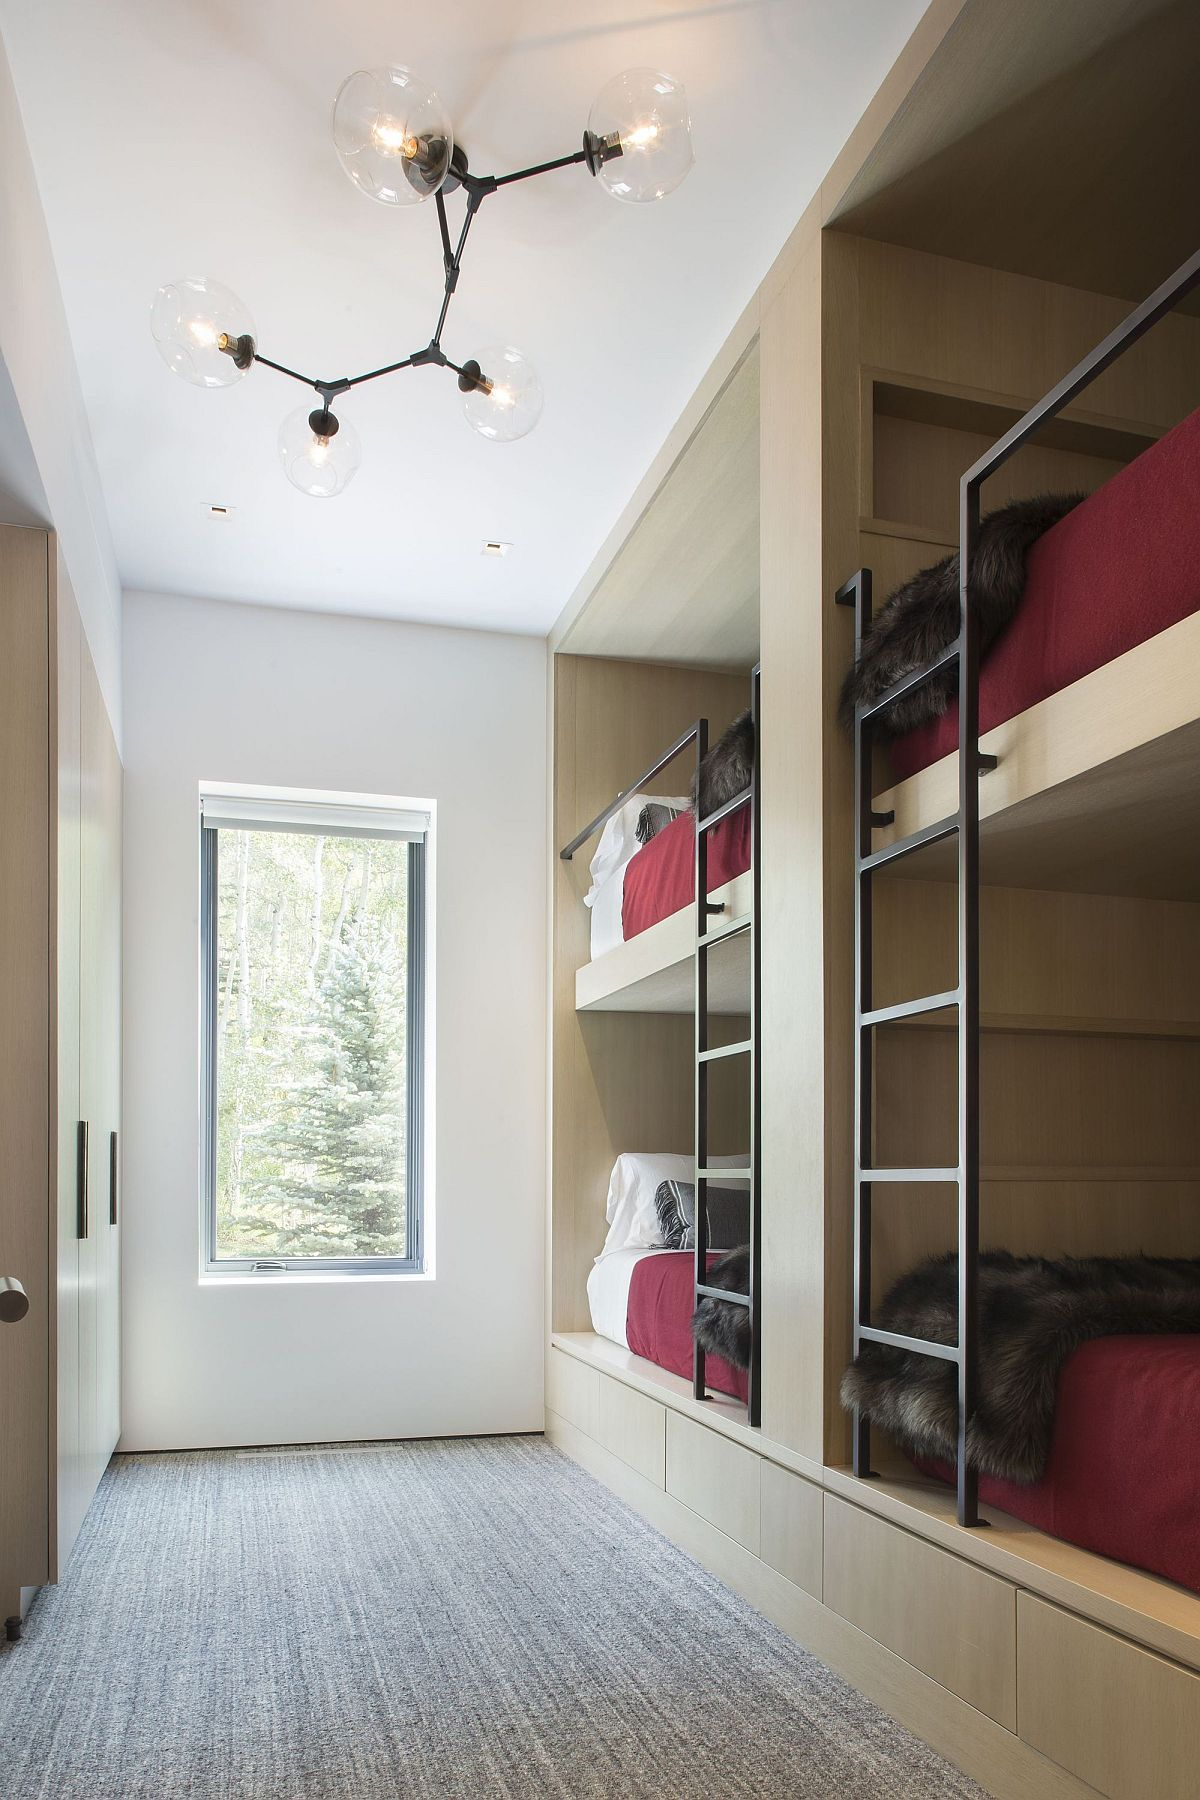 Single-wall-Bunk-beds-for-the-kids-bedroom-17757